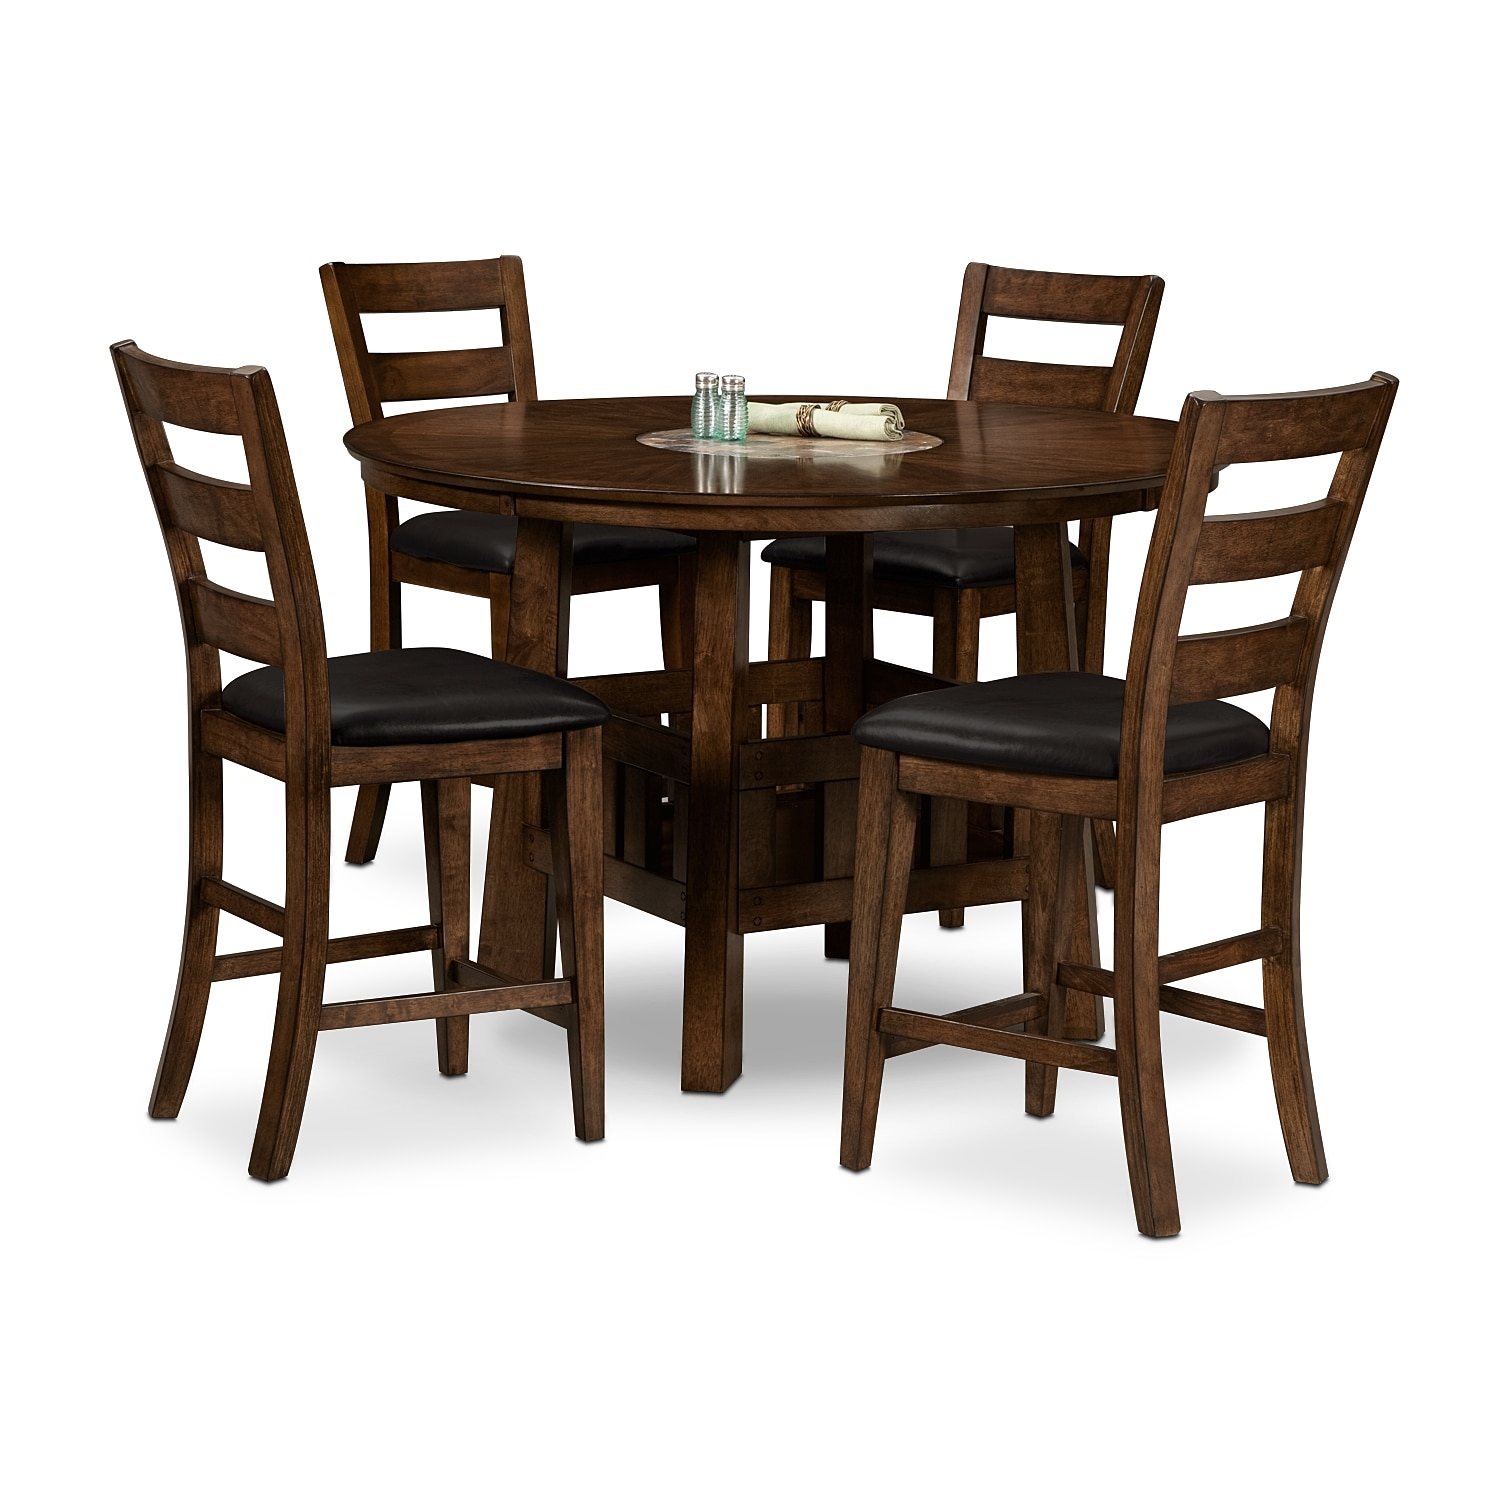 dining room furniture harbor pointe 5 pc counter height dinette